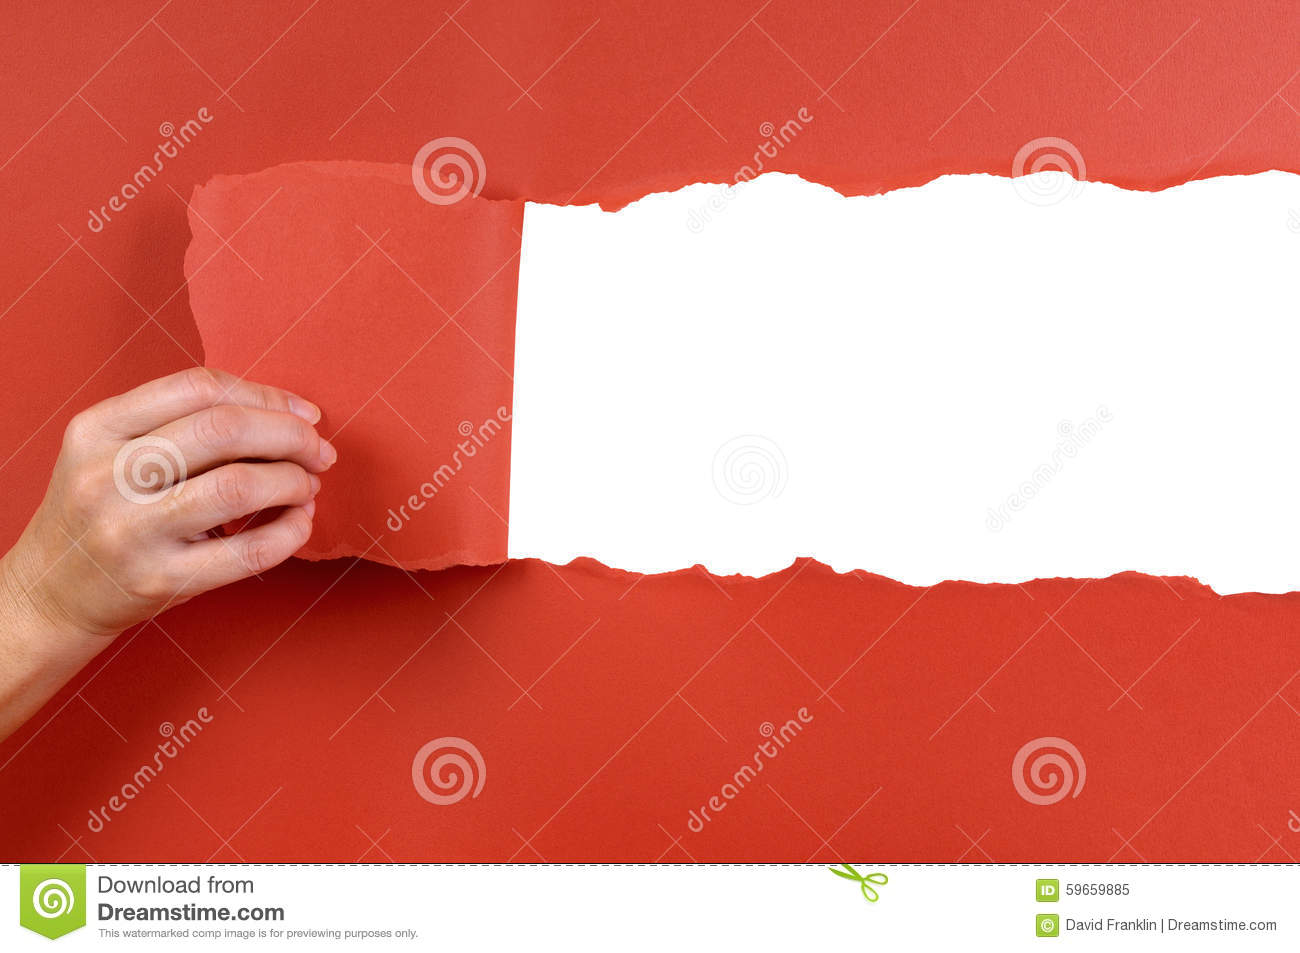 db7f886ffe458 Hand Tearing Red Paper Background Uncovering White Copy Space Stock ...